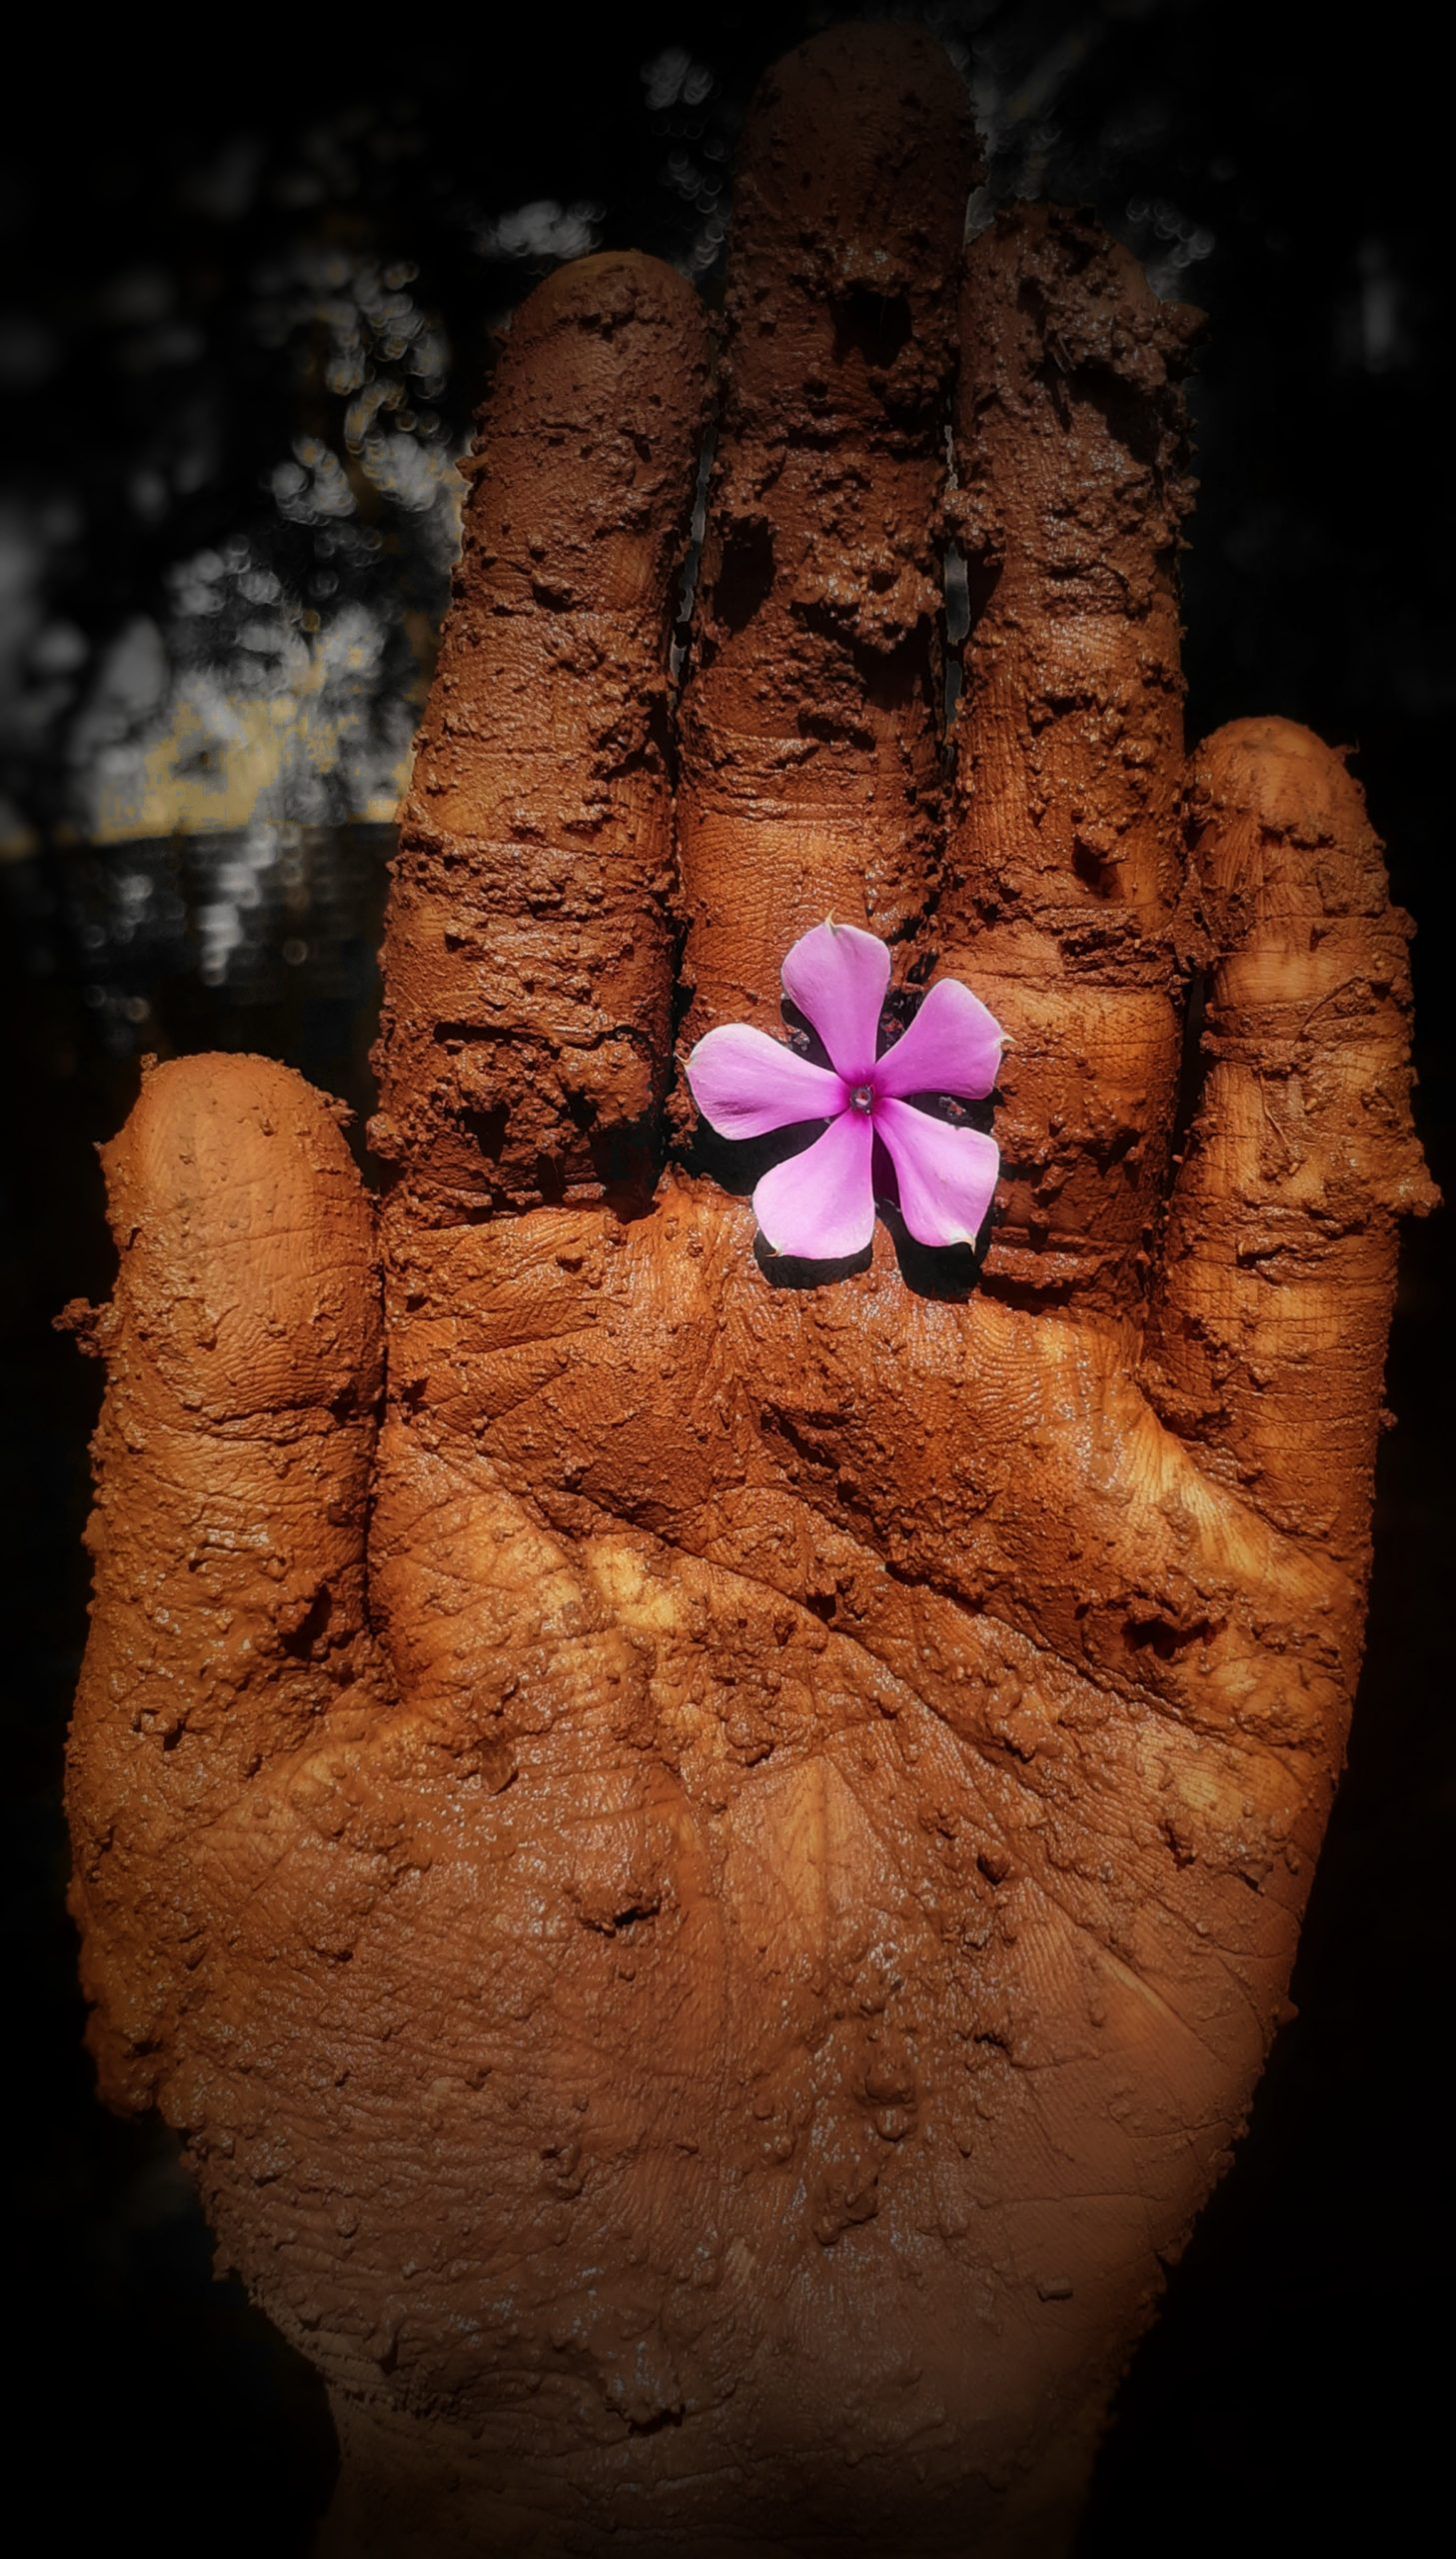 A flower on a muddy hand